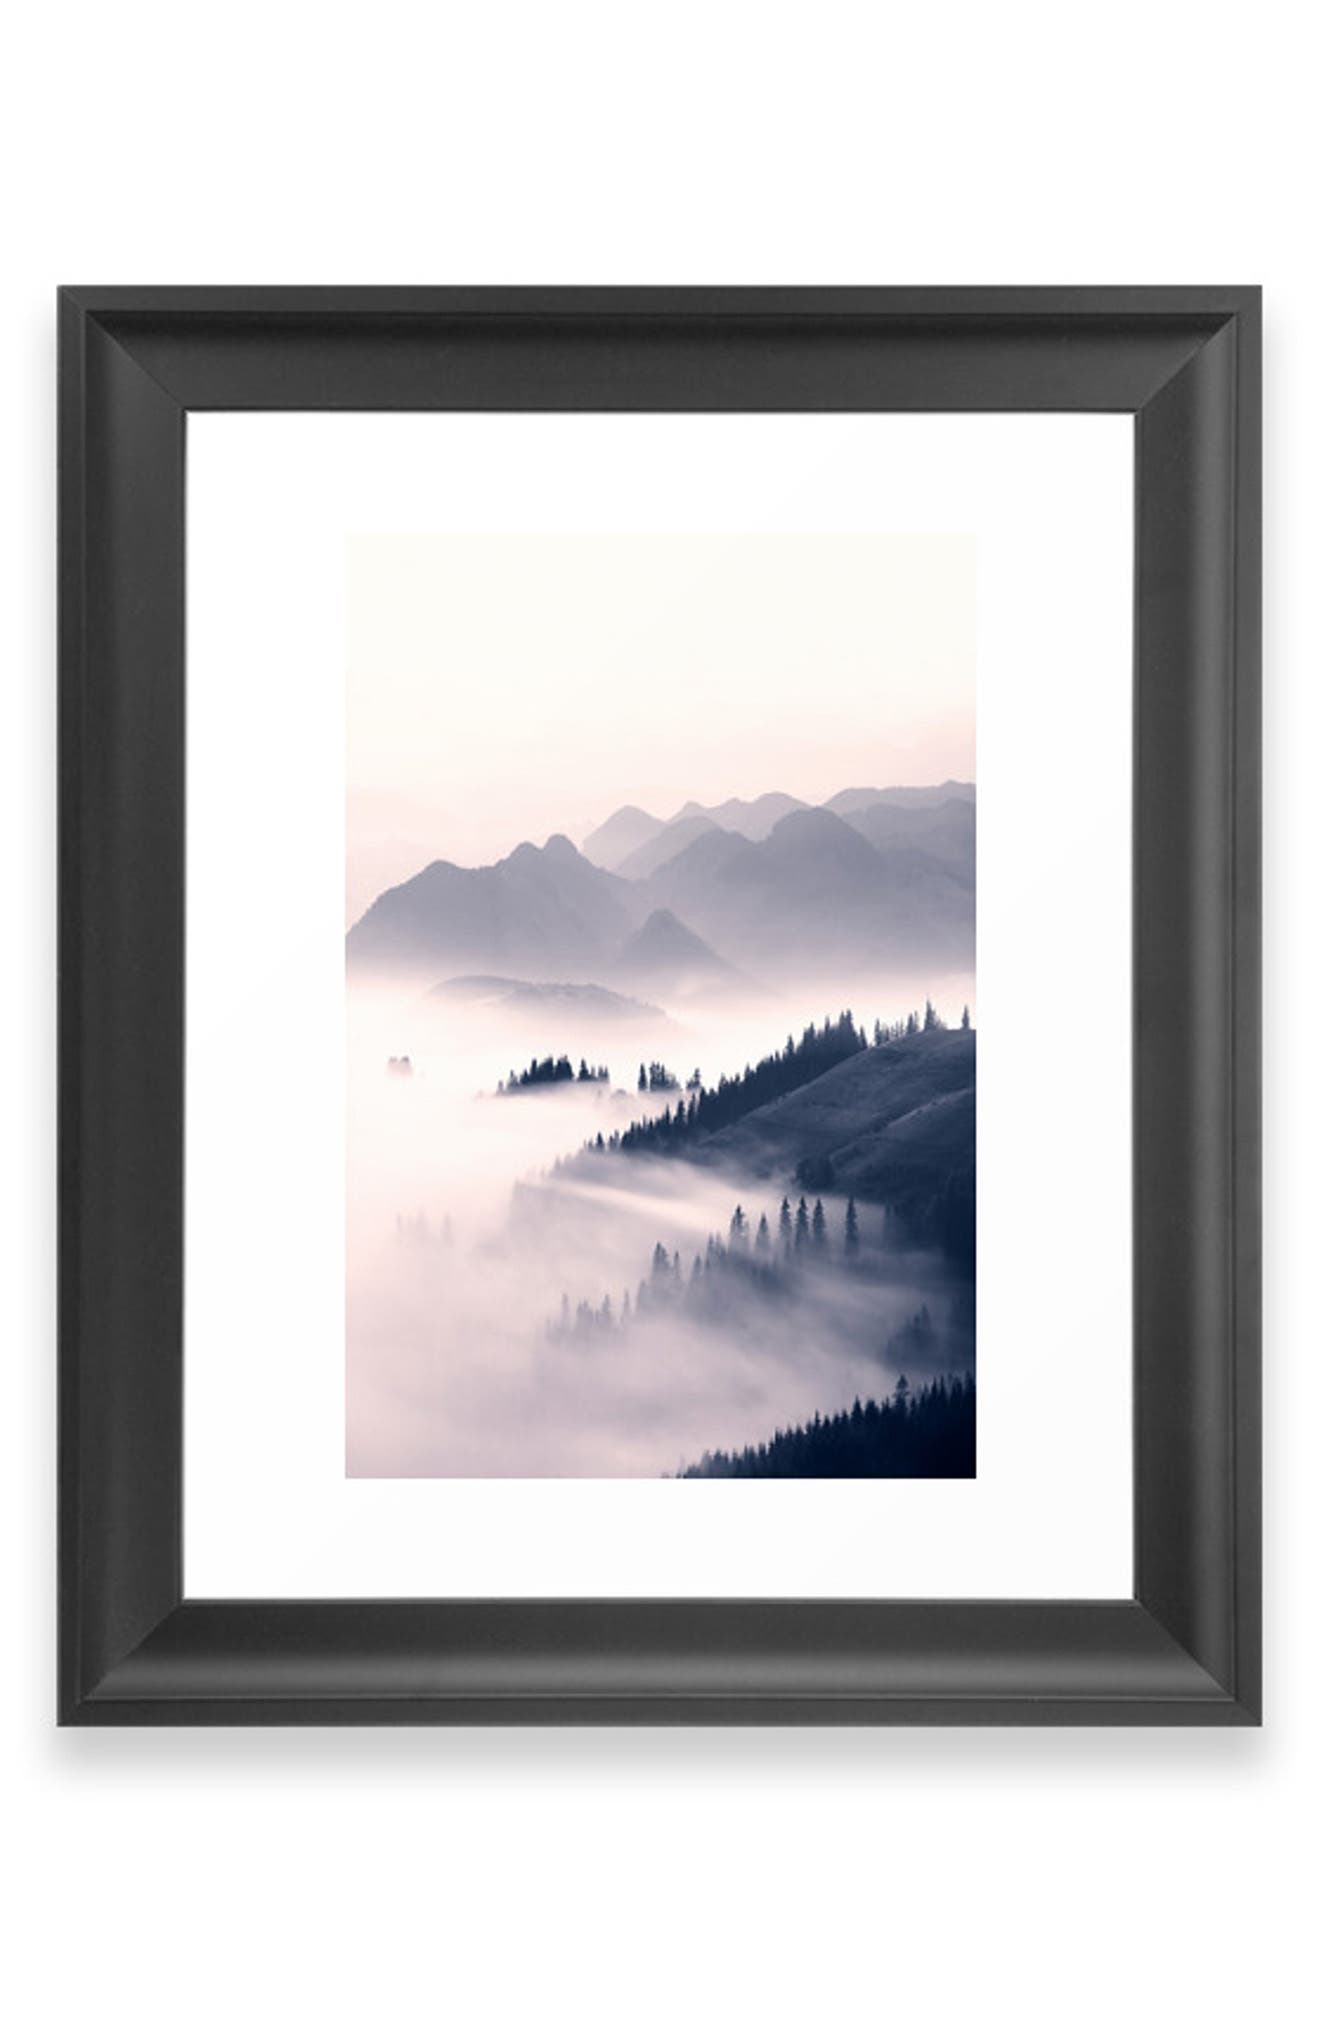 A misty mountain sunrise scene brings a sense of tranquility to a satin-finish art print available on its own or in a ready-to-hang frame. Style Name: Deny Designs Morning Sun Art Print. Style Number: 5867635 1. Available in stores.